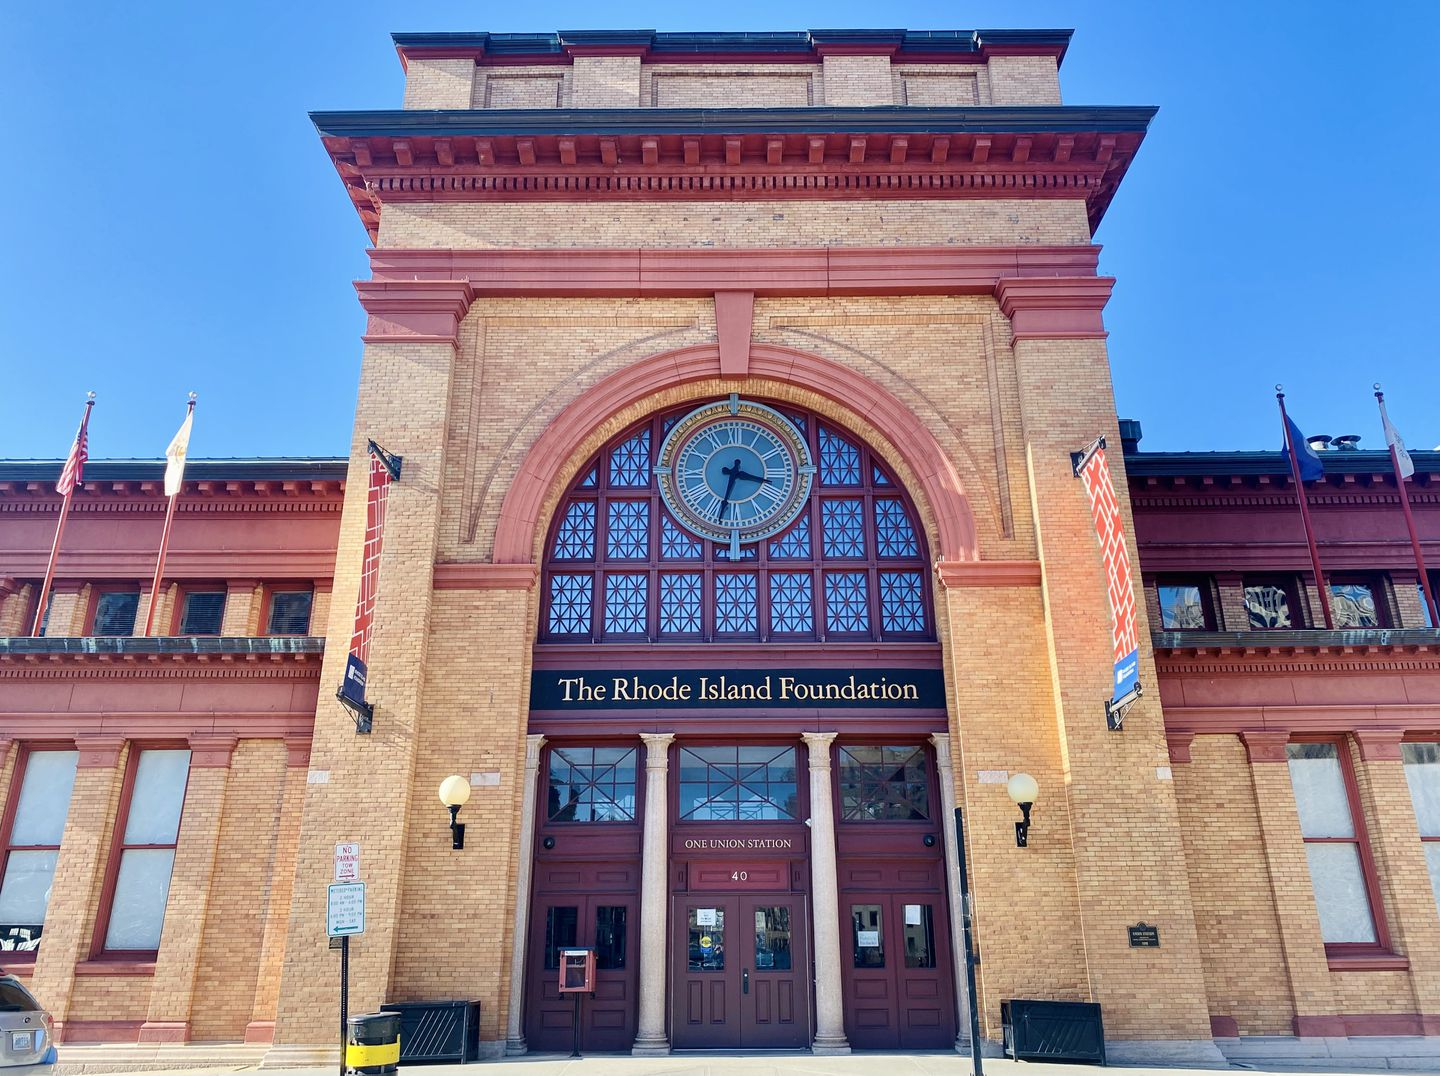 The ground floor of Providence's iconic Union Station will be reimagined as a 16,000-square-foot food hall.